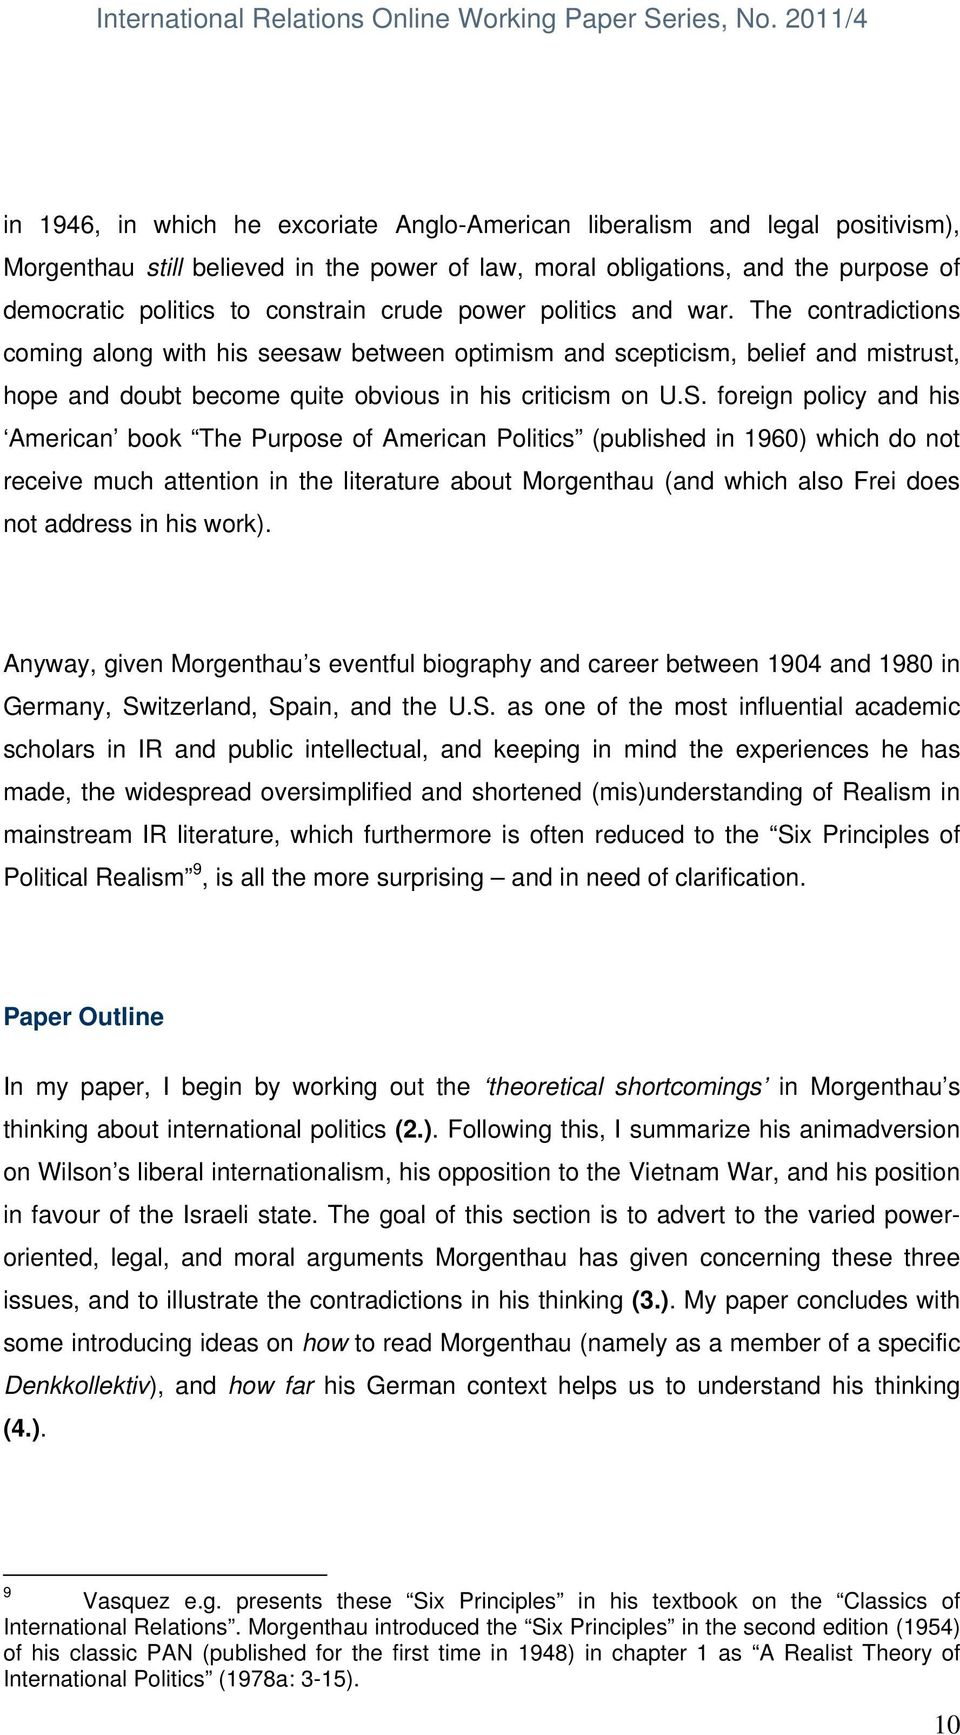 foreign policy and his American book The Purpose of American Politics (published in 1960) which do not receive much attention in the literature about Morgenthau (and which also Frei does not address